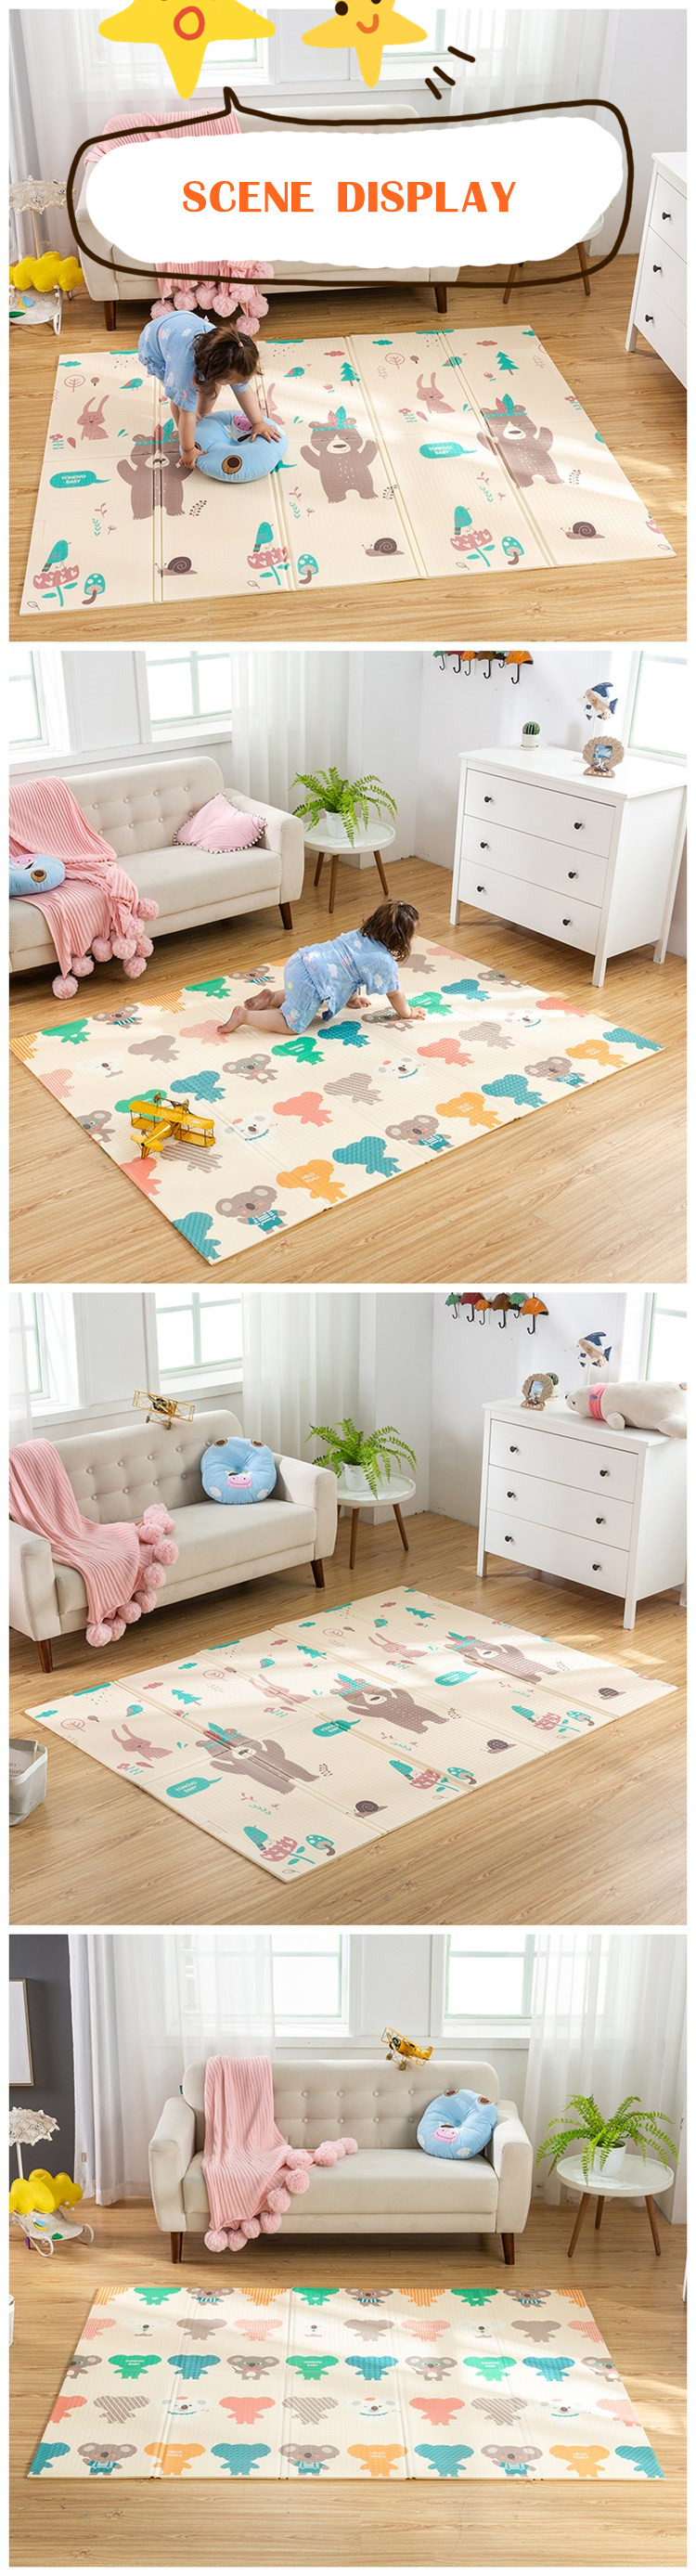 HTB1V1wNa75E3KVjSZFCq6zuzXXa5 Infant Shining Foldable Baby Play Mat Thickened Tapete Infantil Home Baby Room Puzzle Mat  XPE 150X200CM Splicing 1CM Thickness